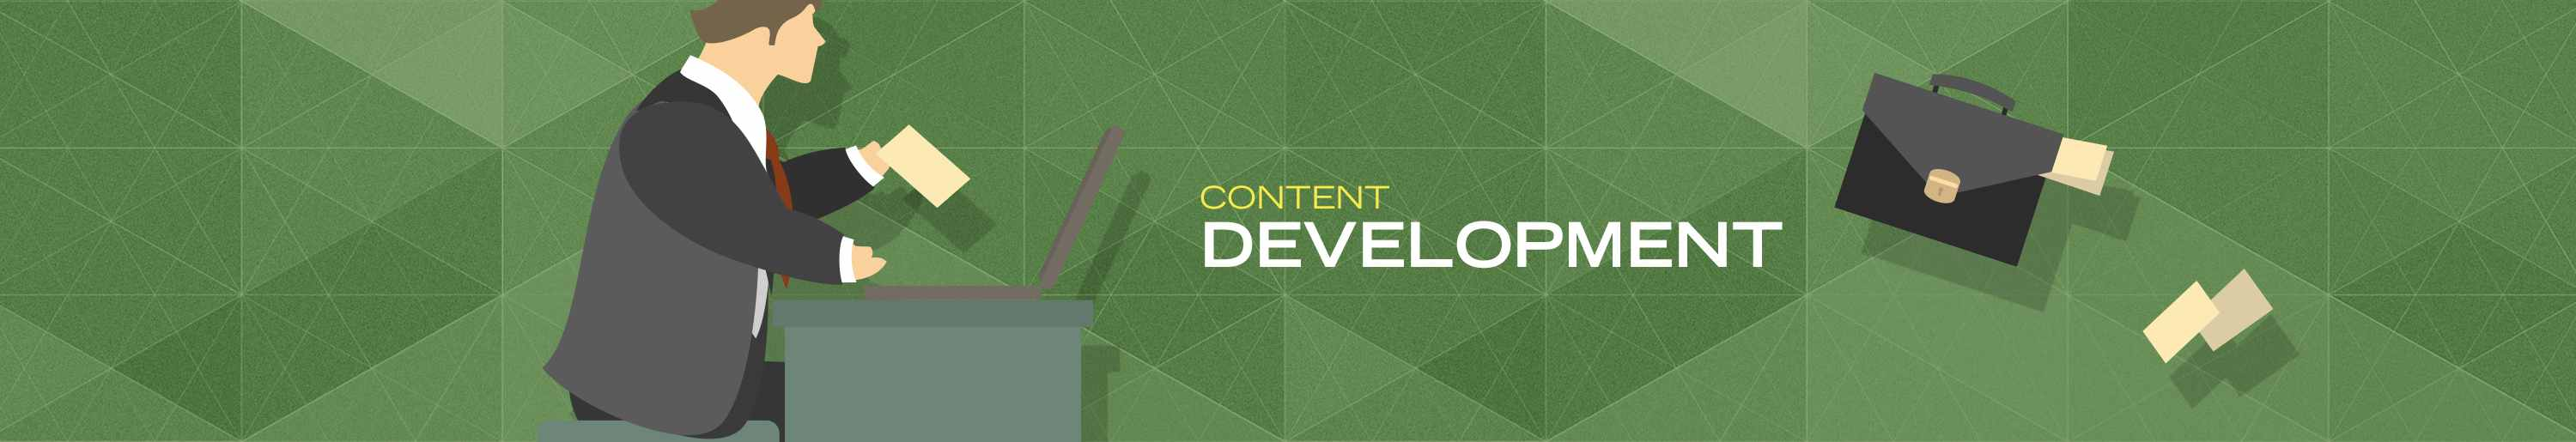 content_development_header2